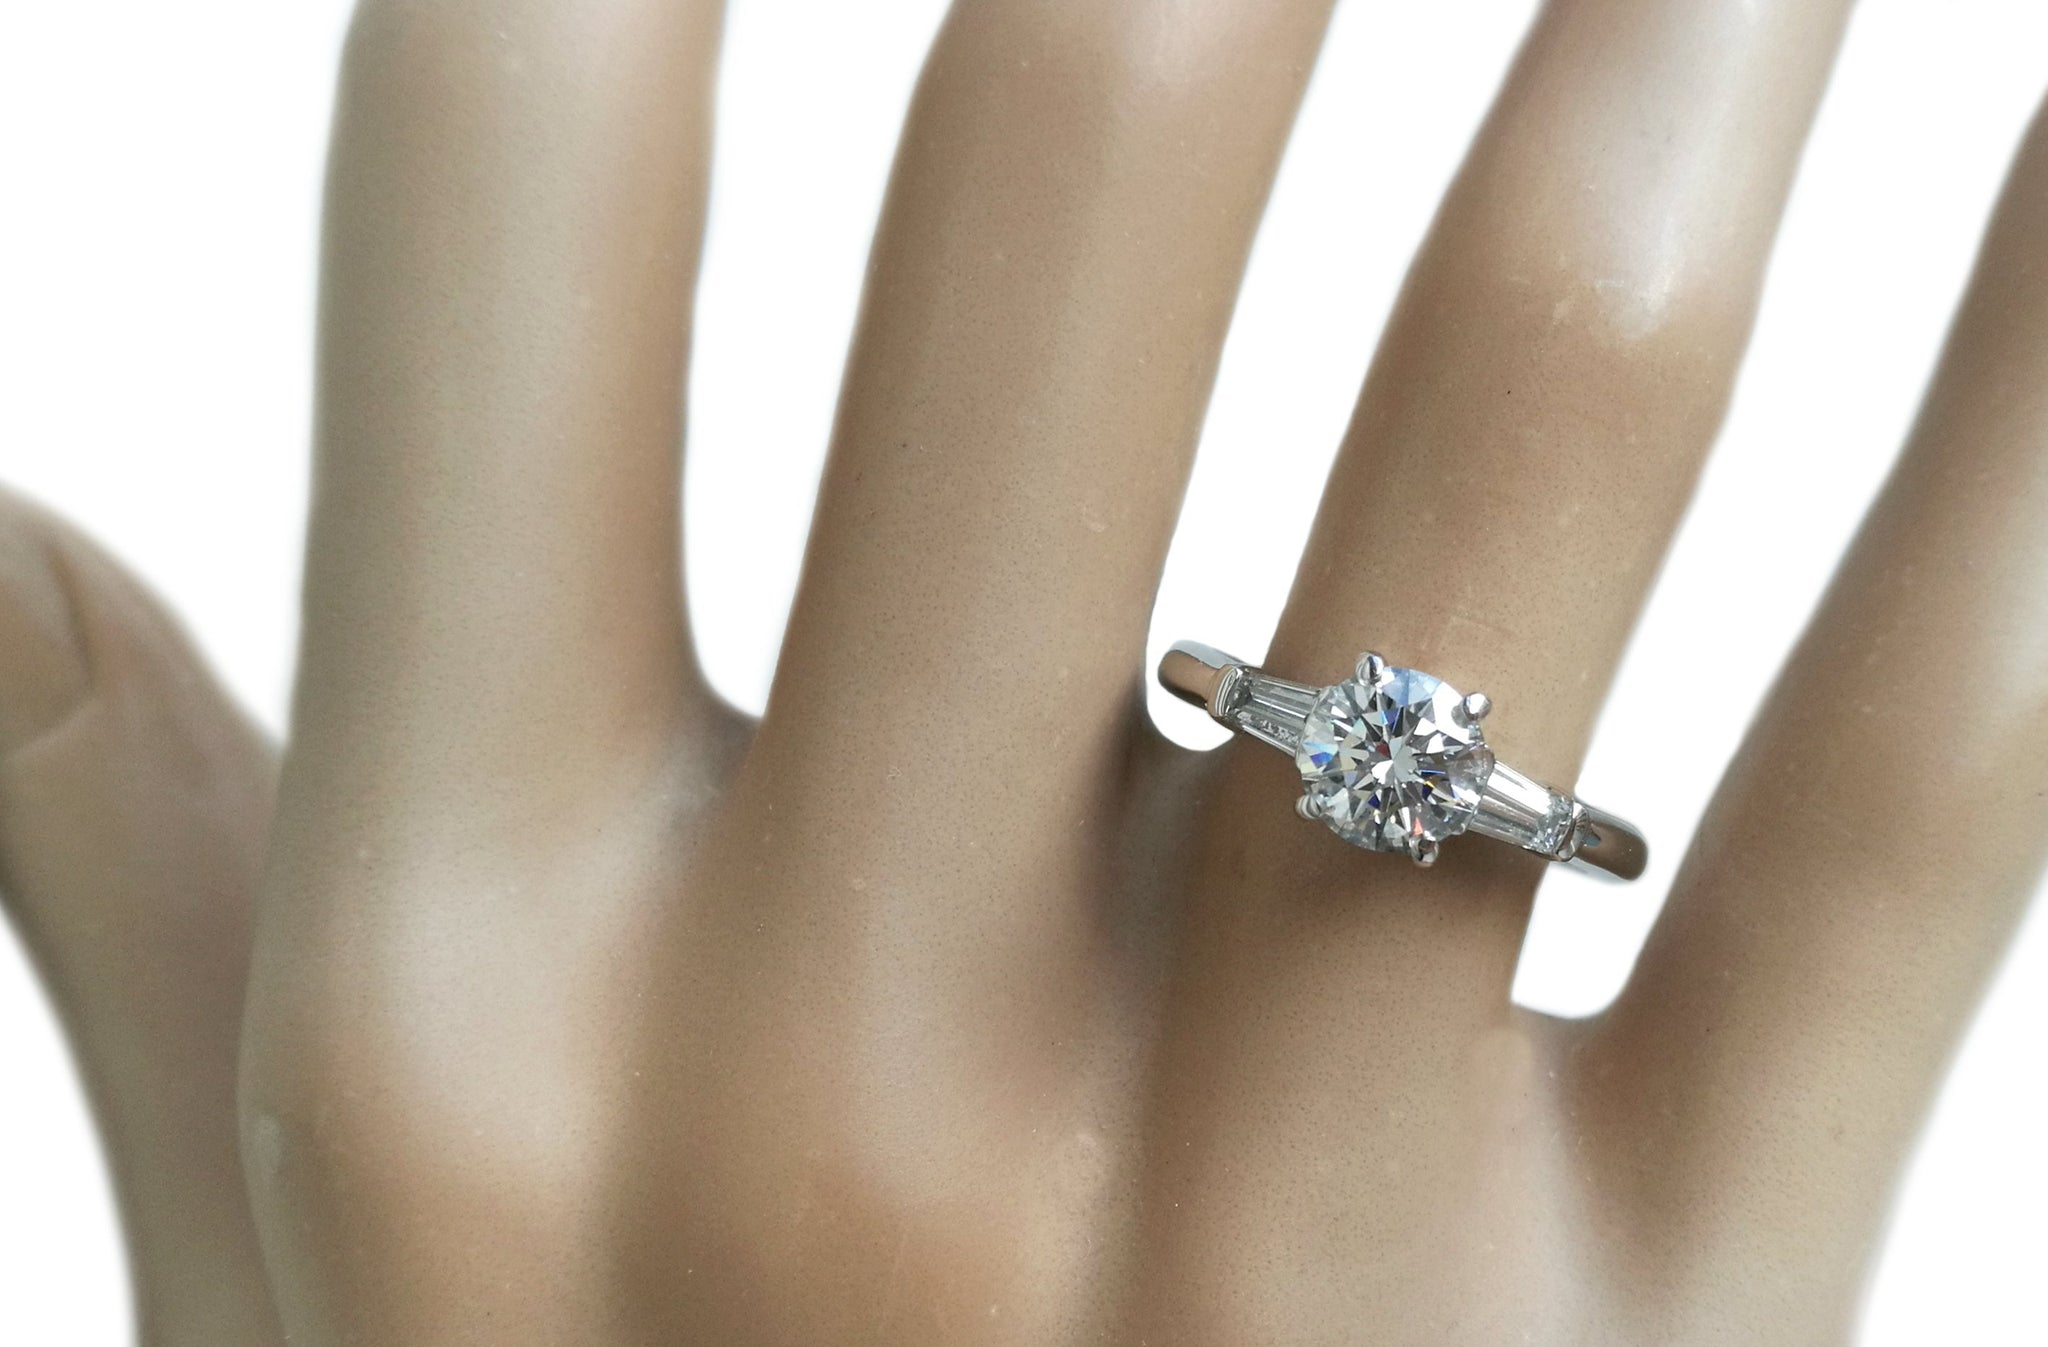 Tiffany & Co. 1.17ct G/VS1 3 Stone Diamond Engagement Ring with Baguette Side Stones on finger